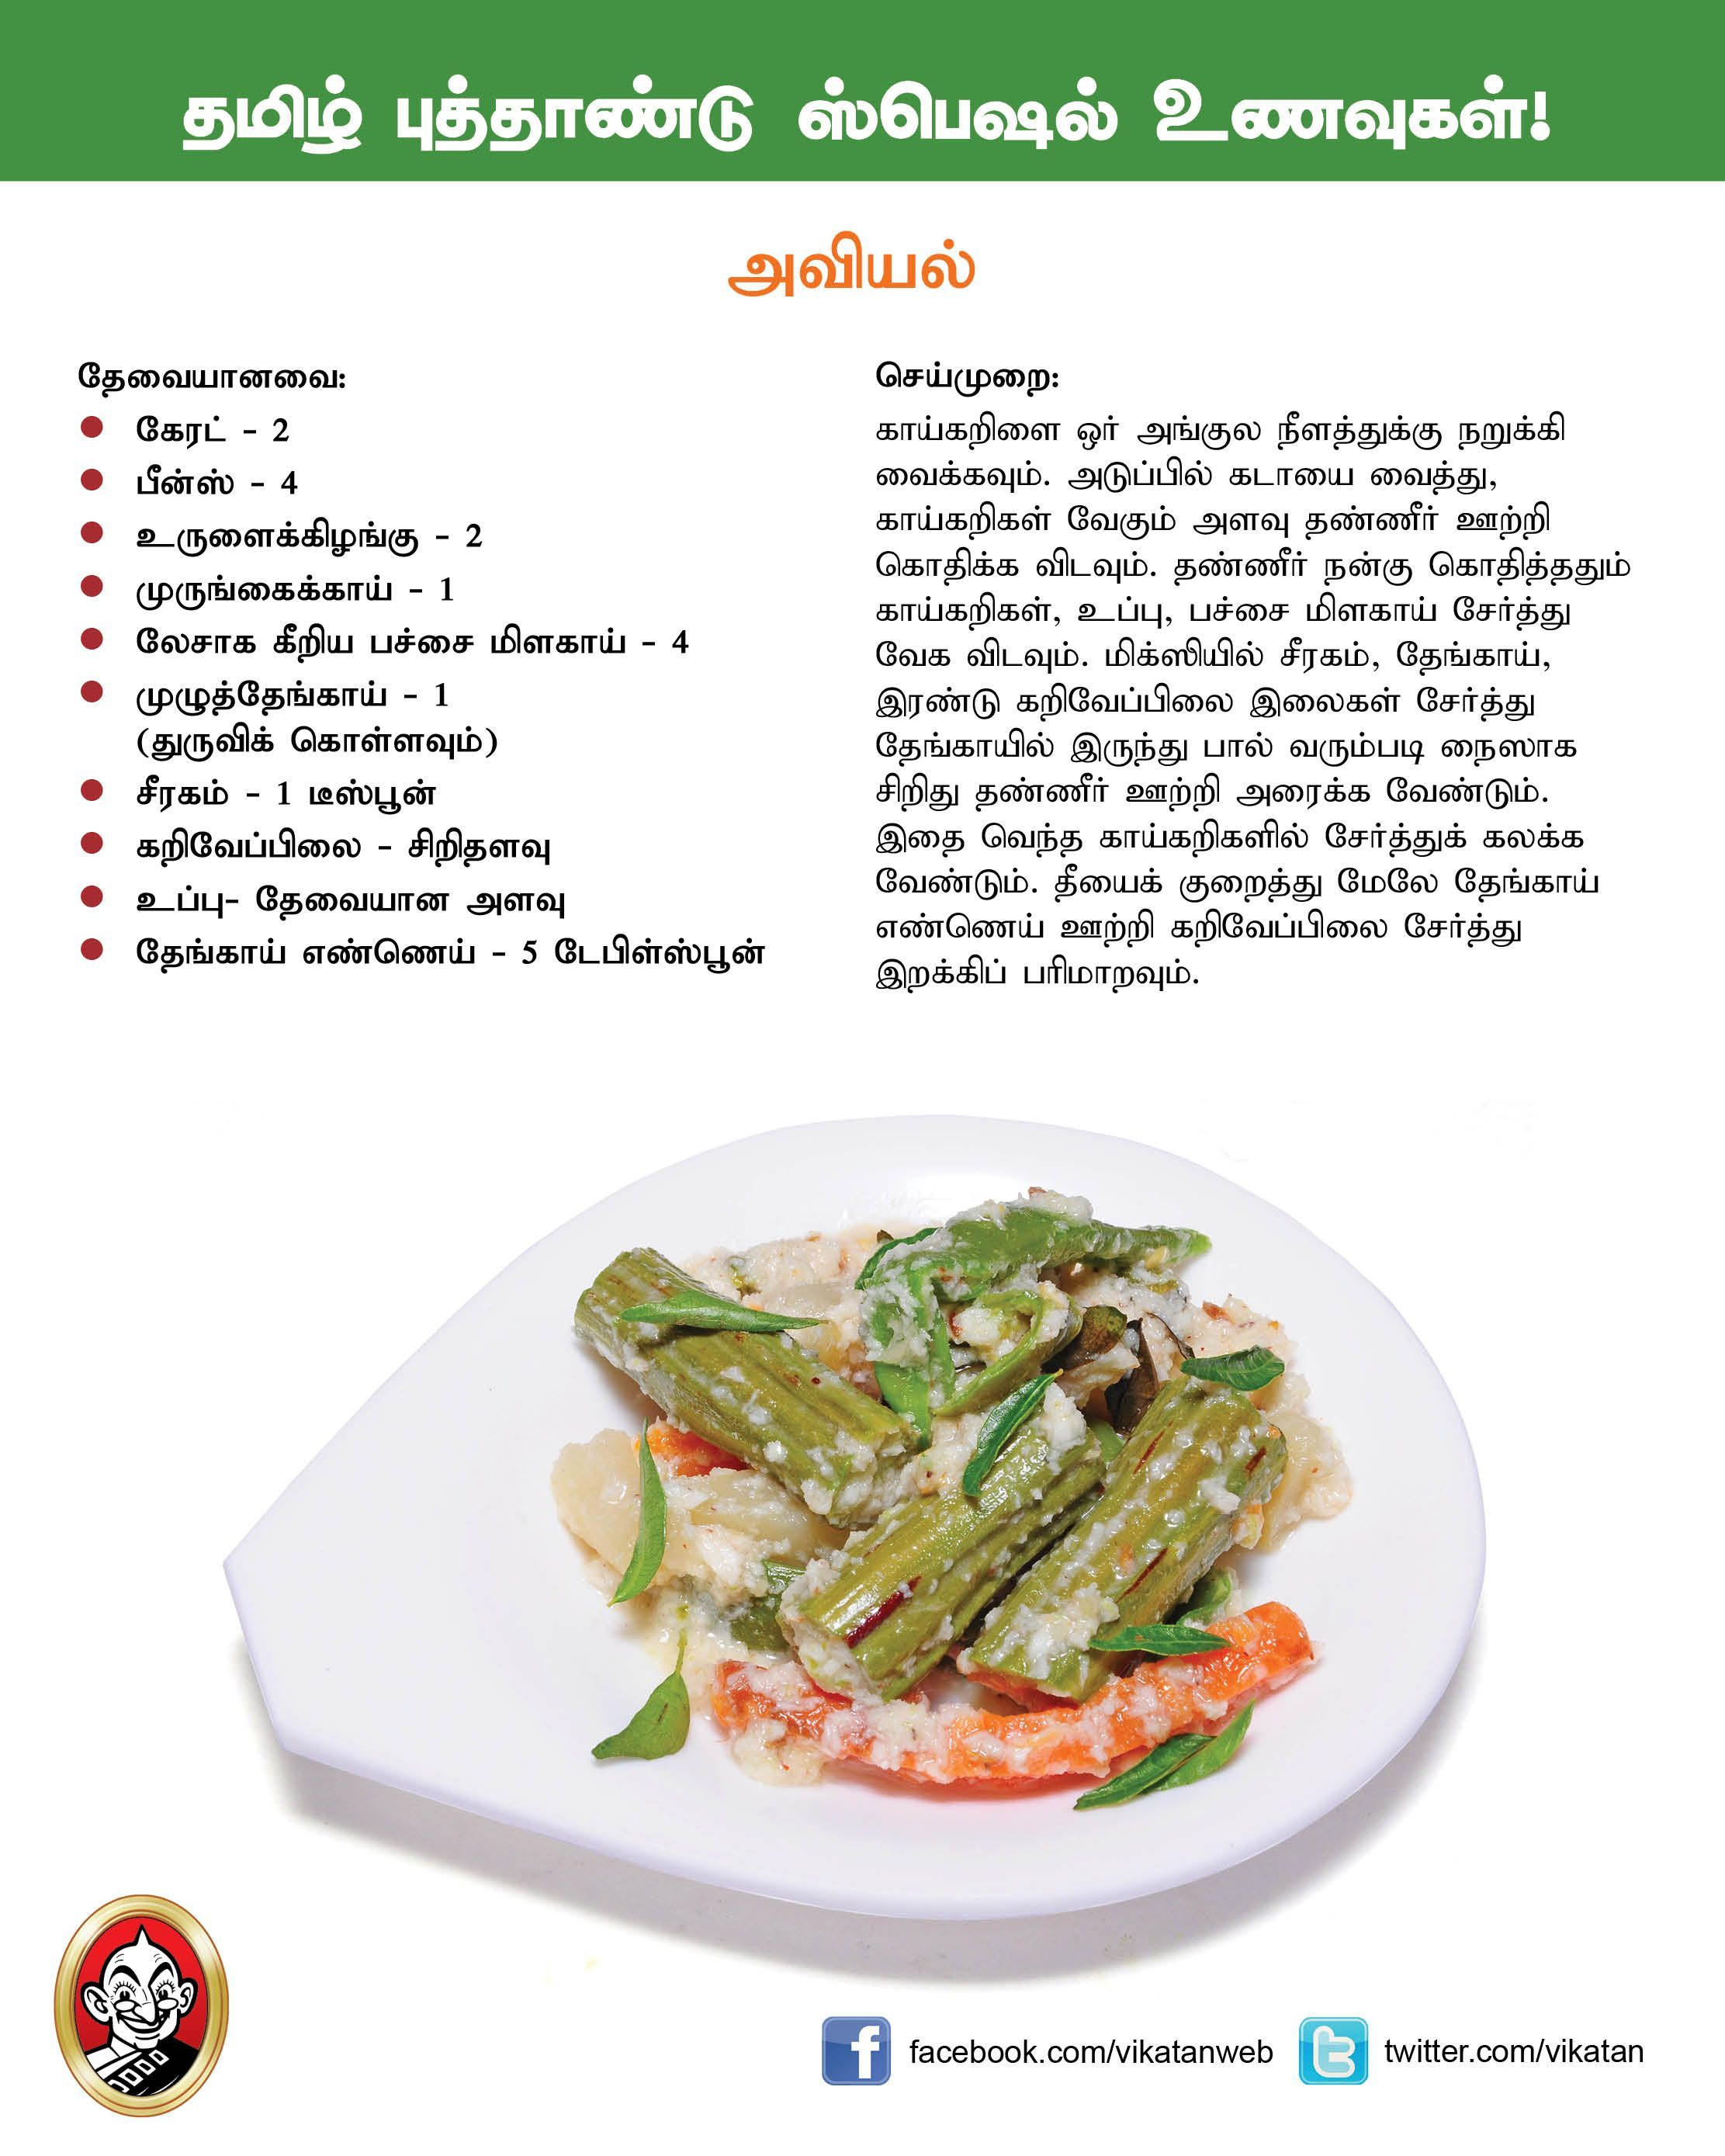 Tamil new year special recipes tamil new year recipes pinterest tamil new year special recipes forumfinder Gallery